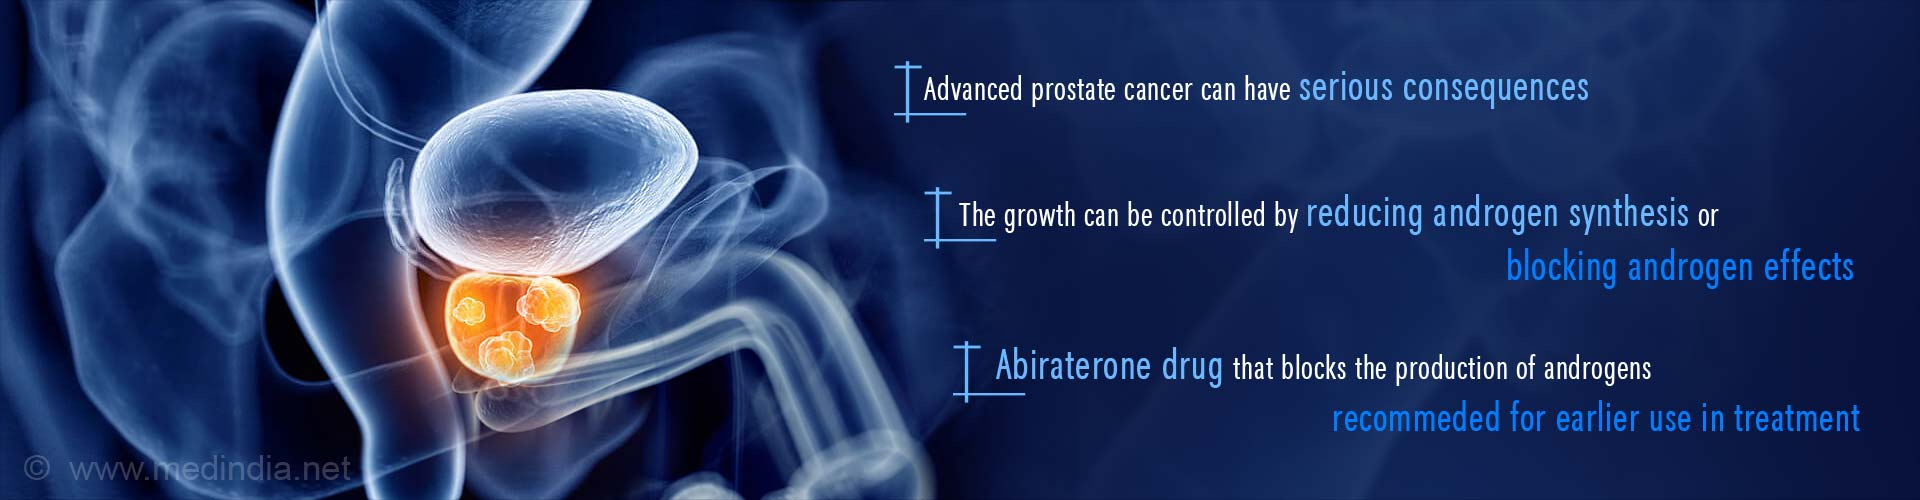 Early Use of Abiraterone in Hormone-Sensitive Advanced Prostate Cancer Recommended